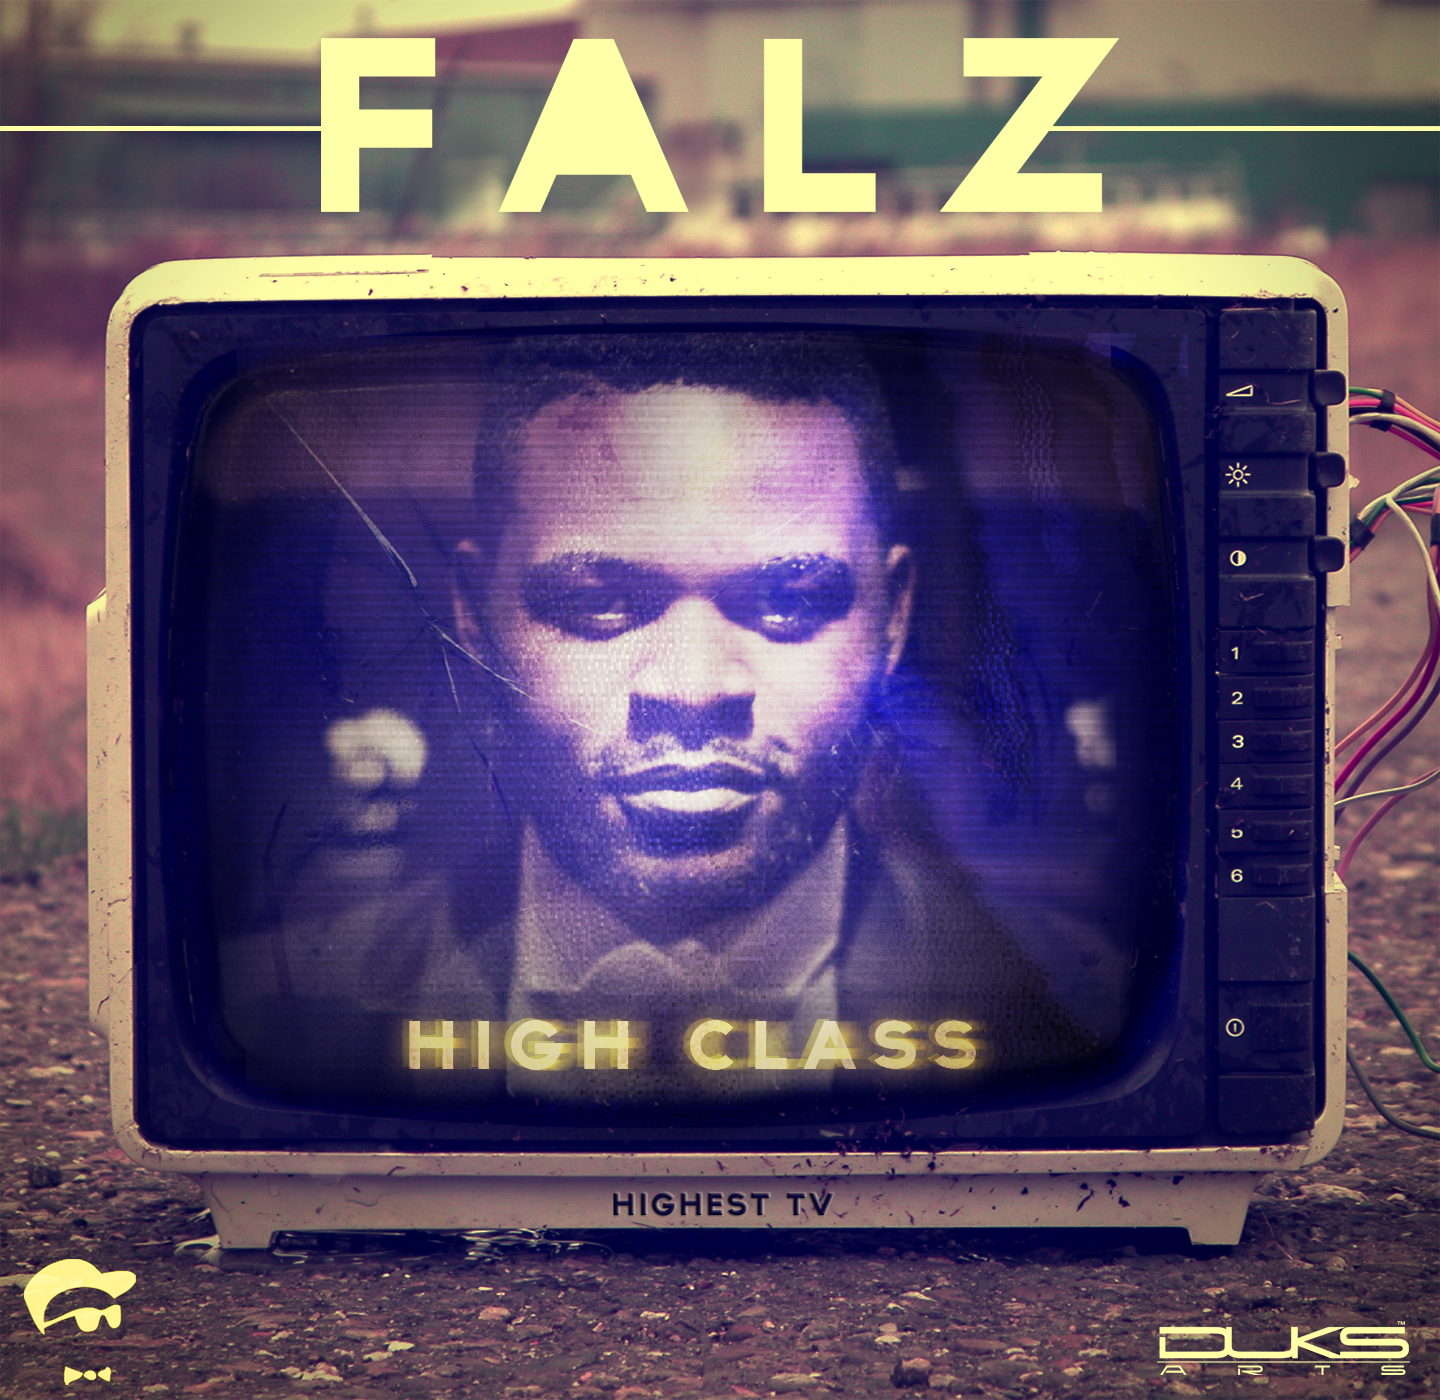 Falz High Class Artwork - Falz-High-Class-Artwork